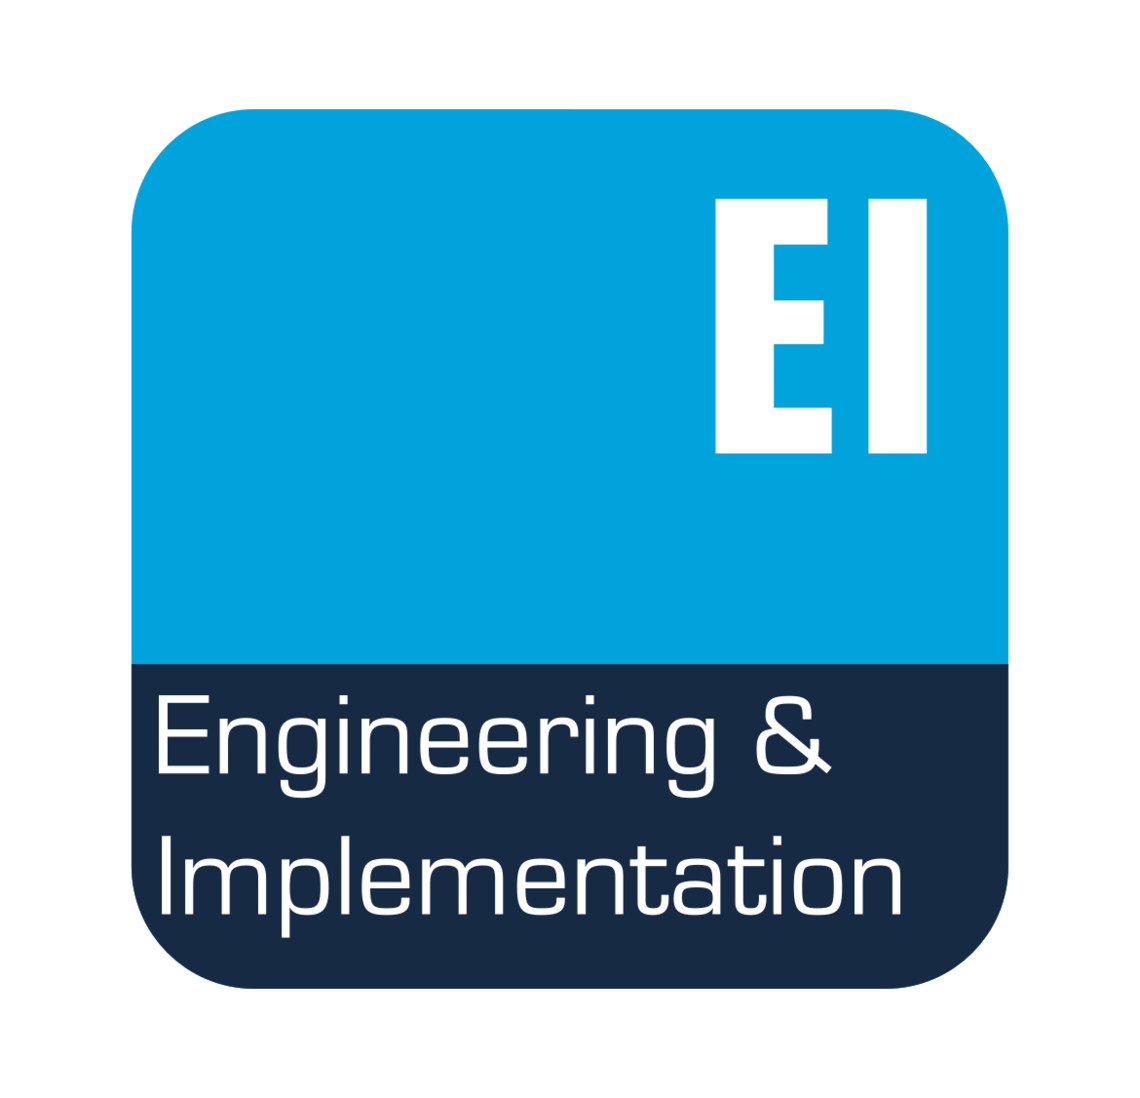 AEF Engineering & Implementation